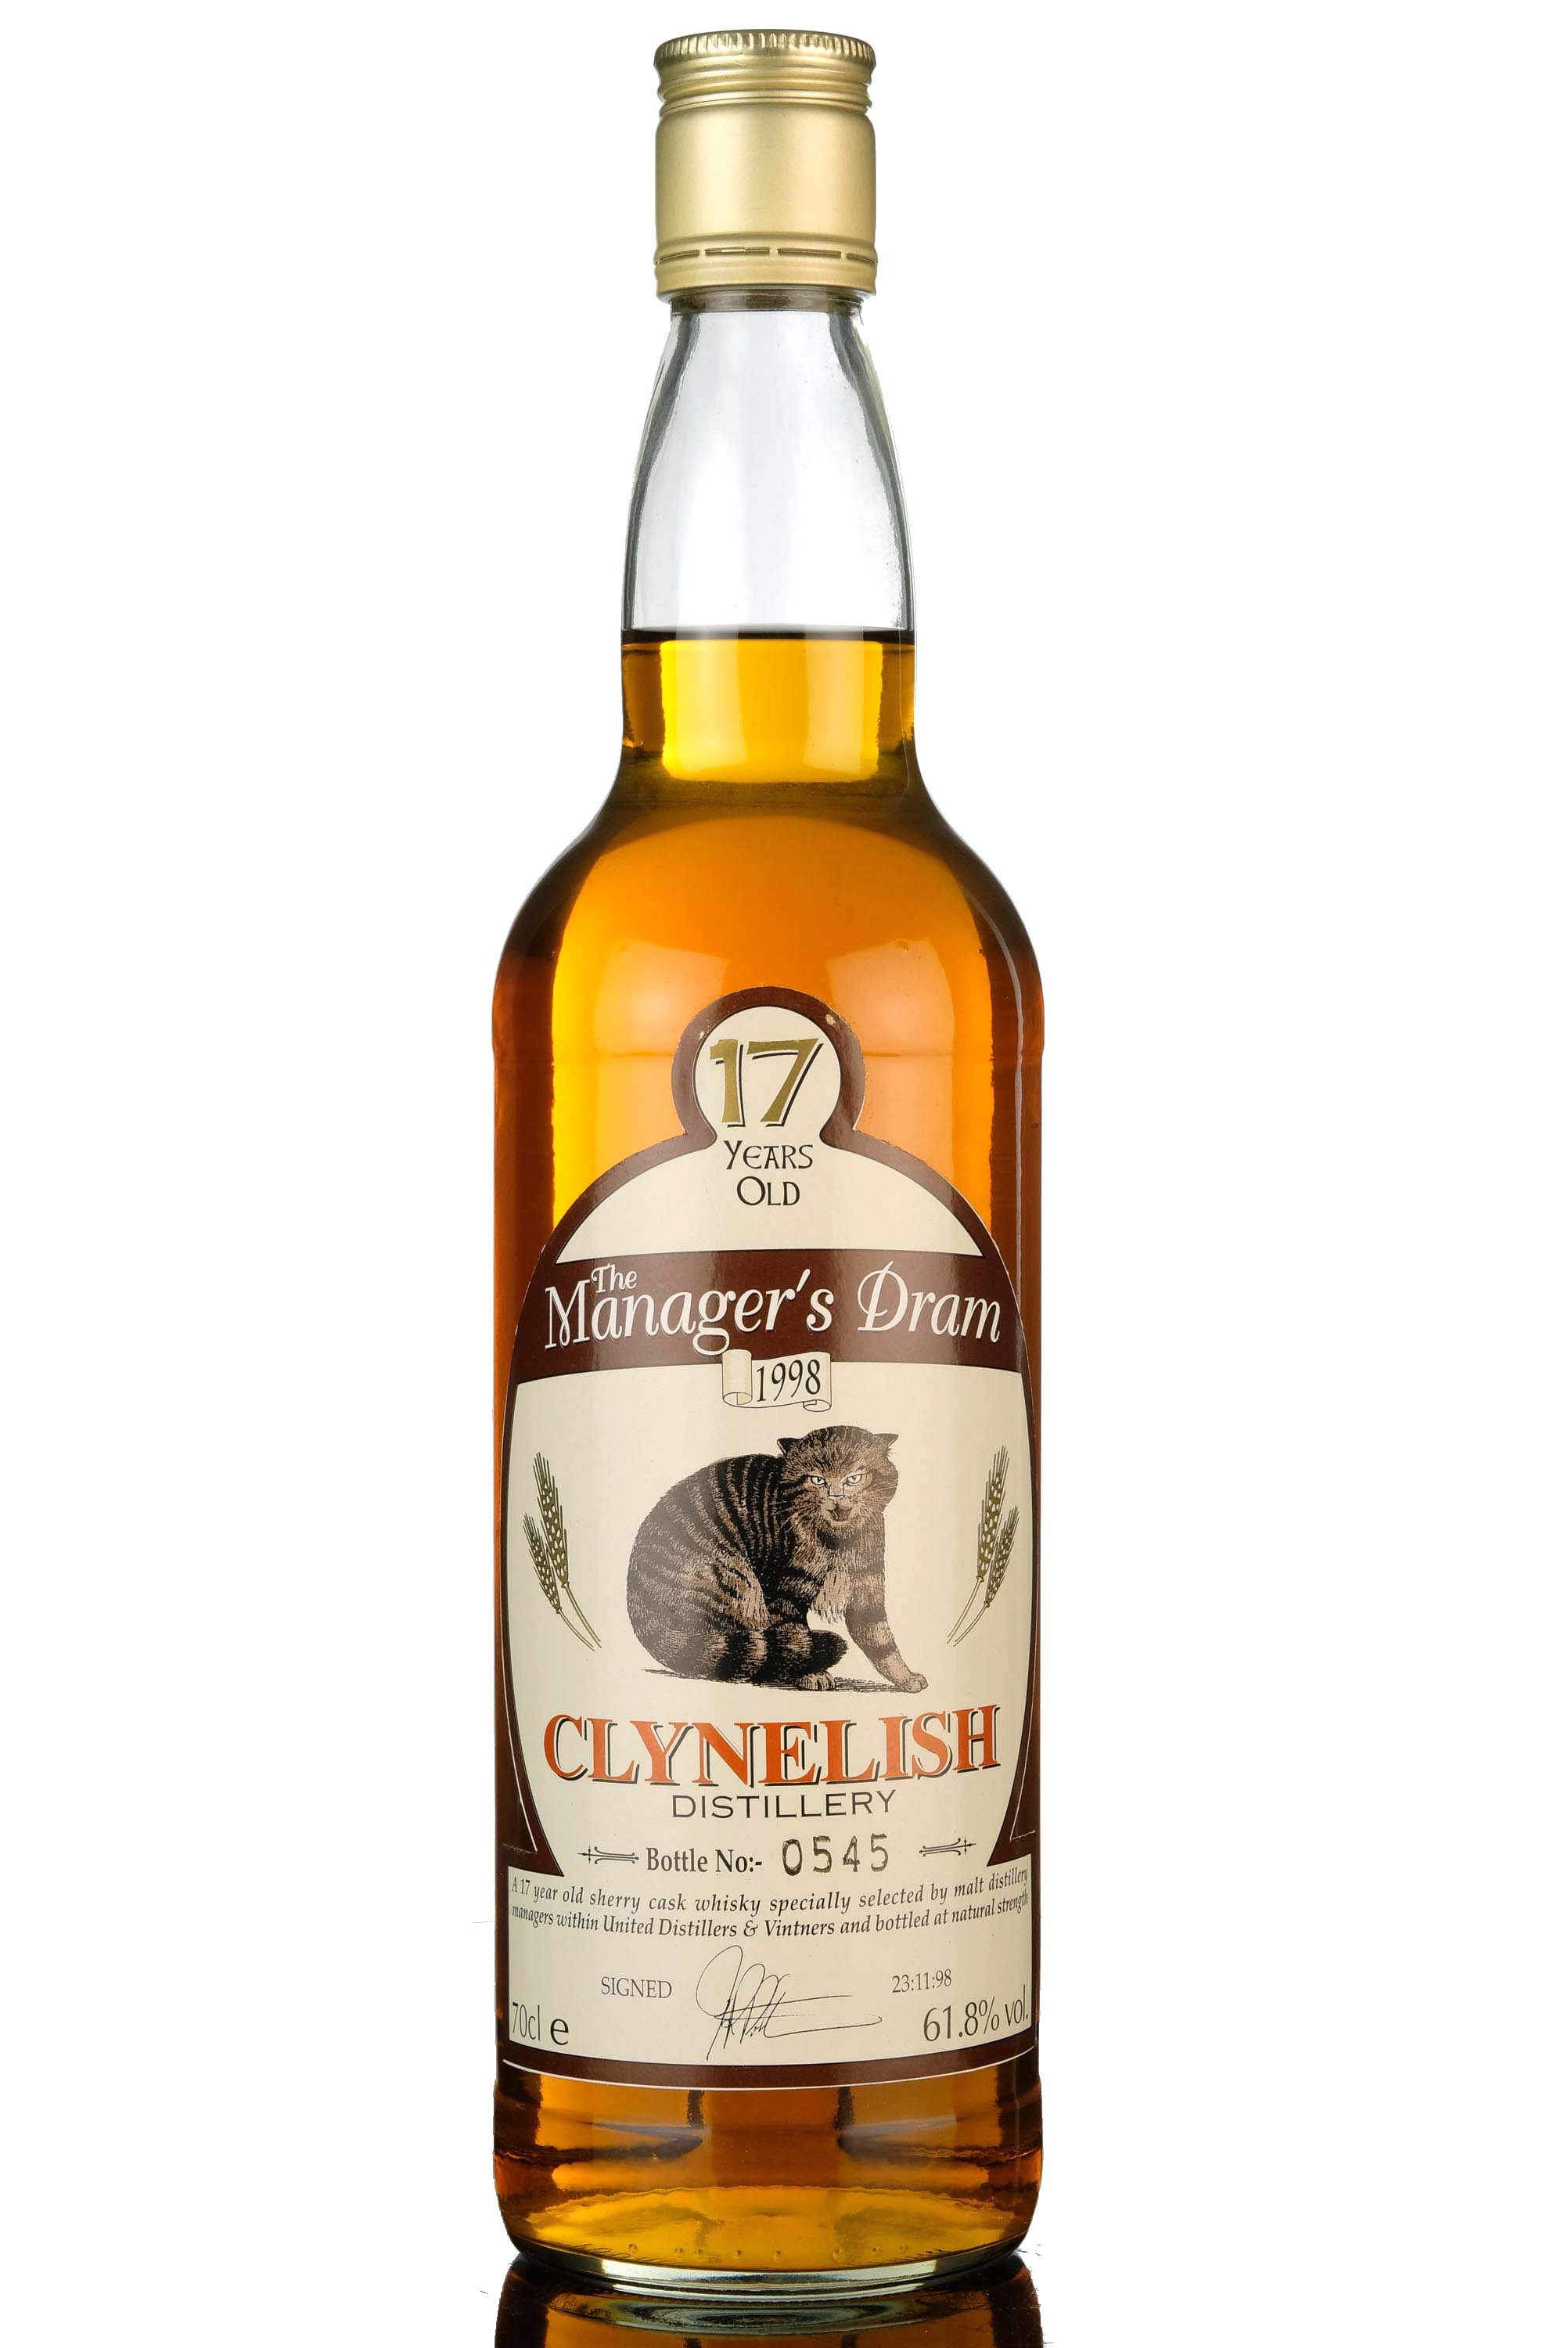 clynelish 17 year old - managers dram 1998